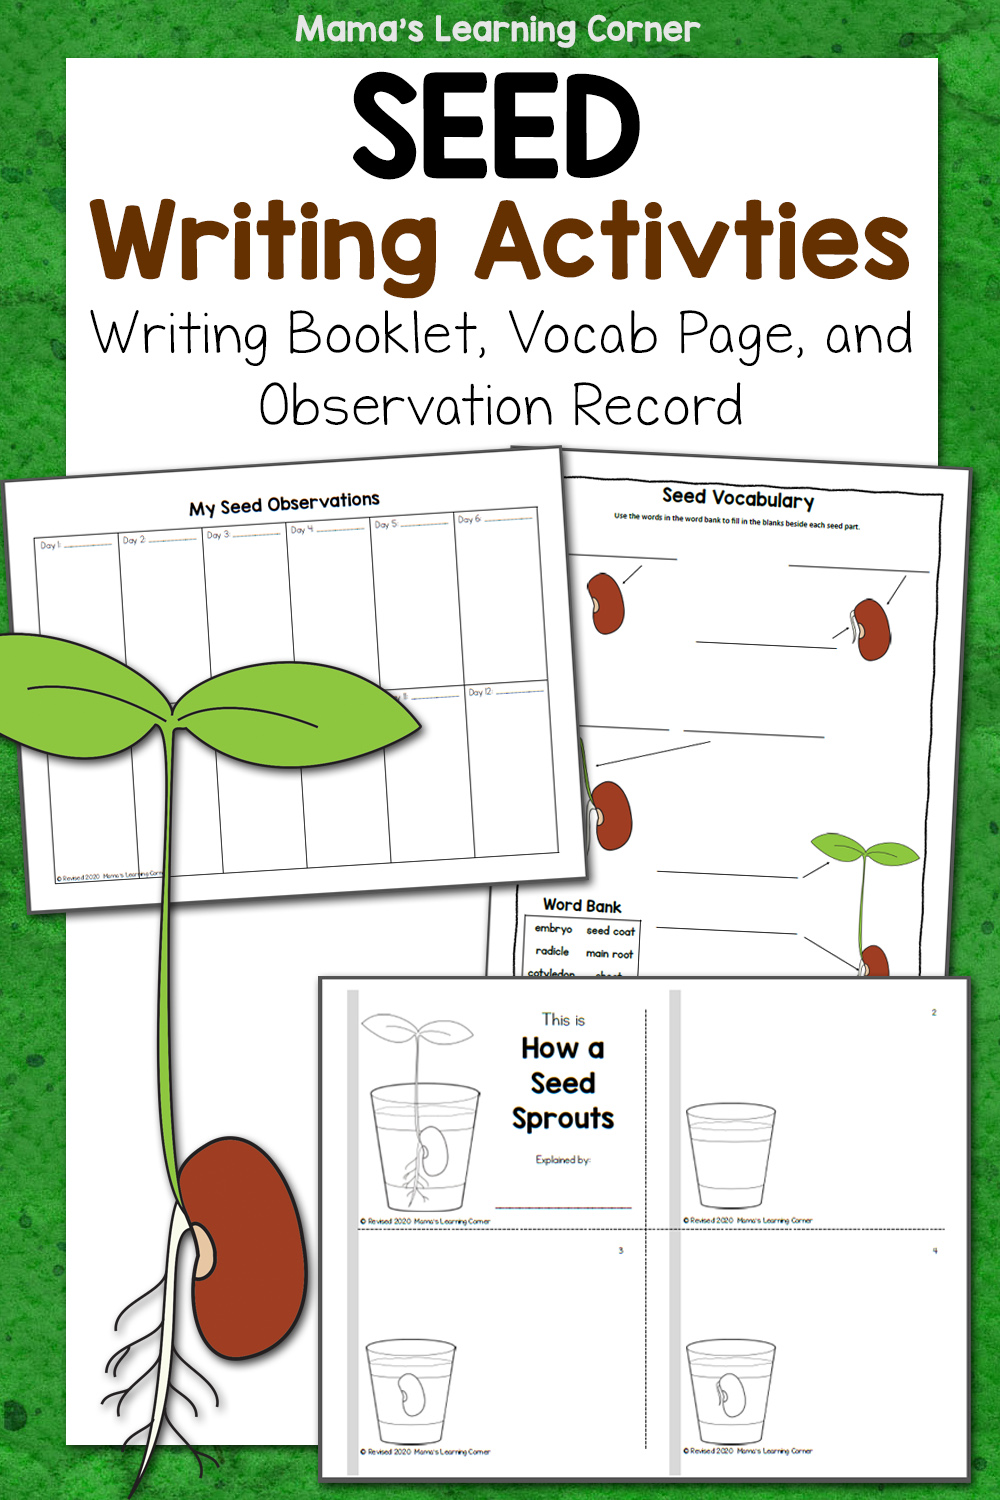 medium resolution of Seed Writing Activities - Mamas Learning Corner